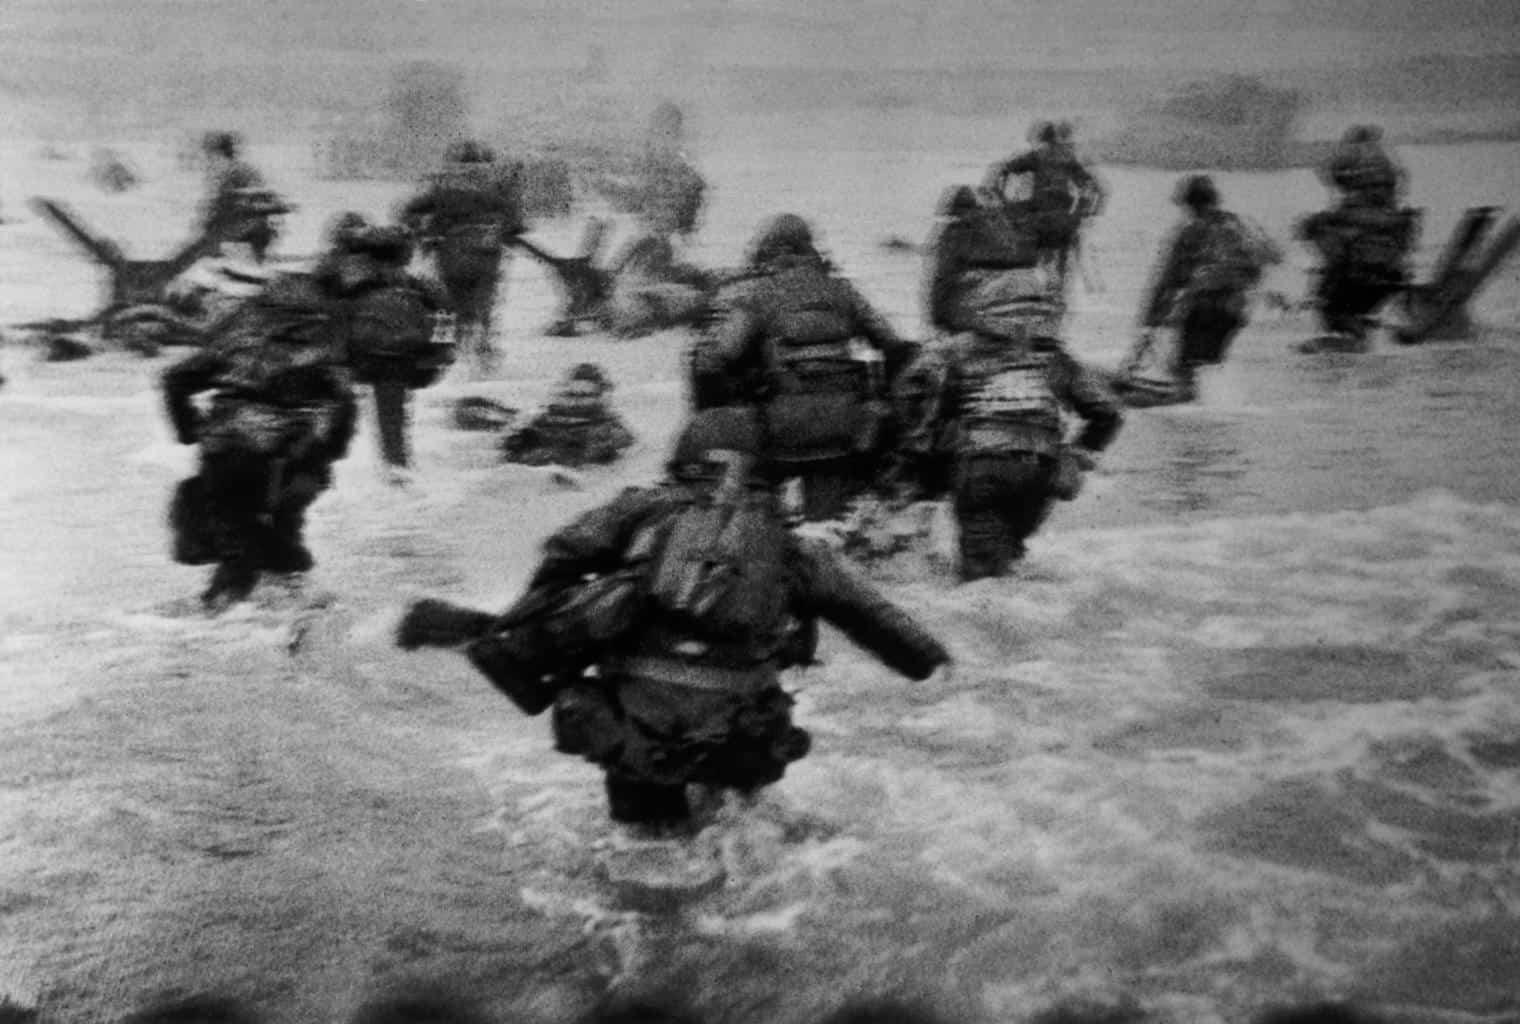 robert-capa-d-day-landing-at-normandy